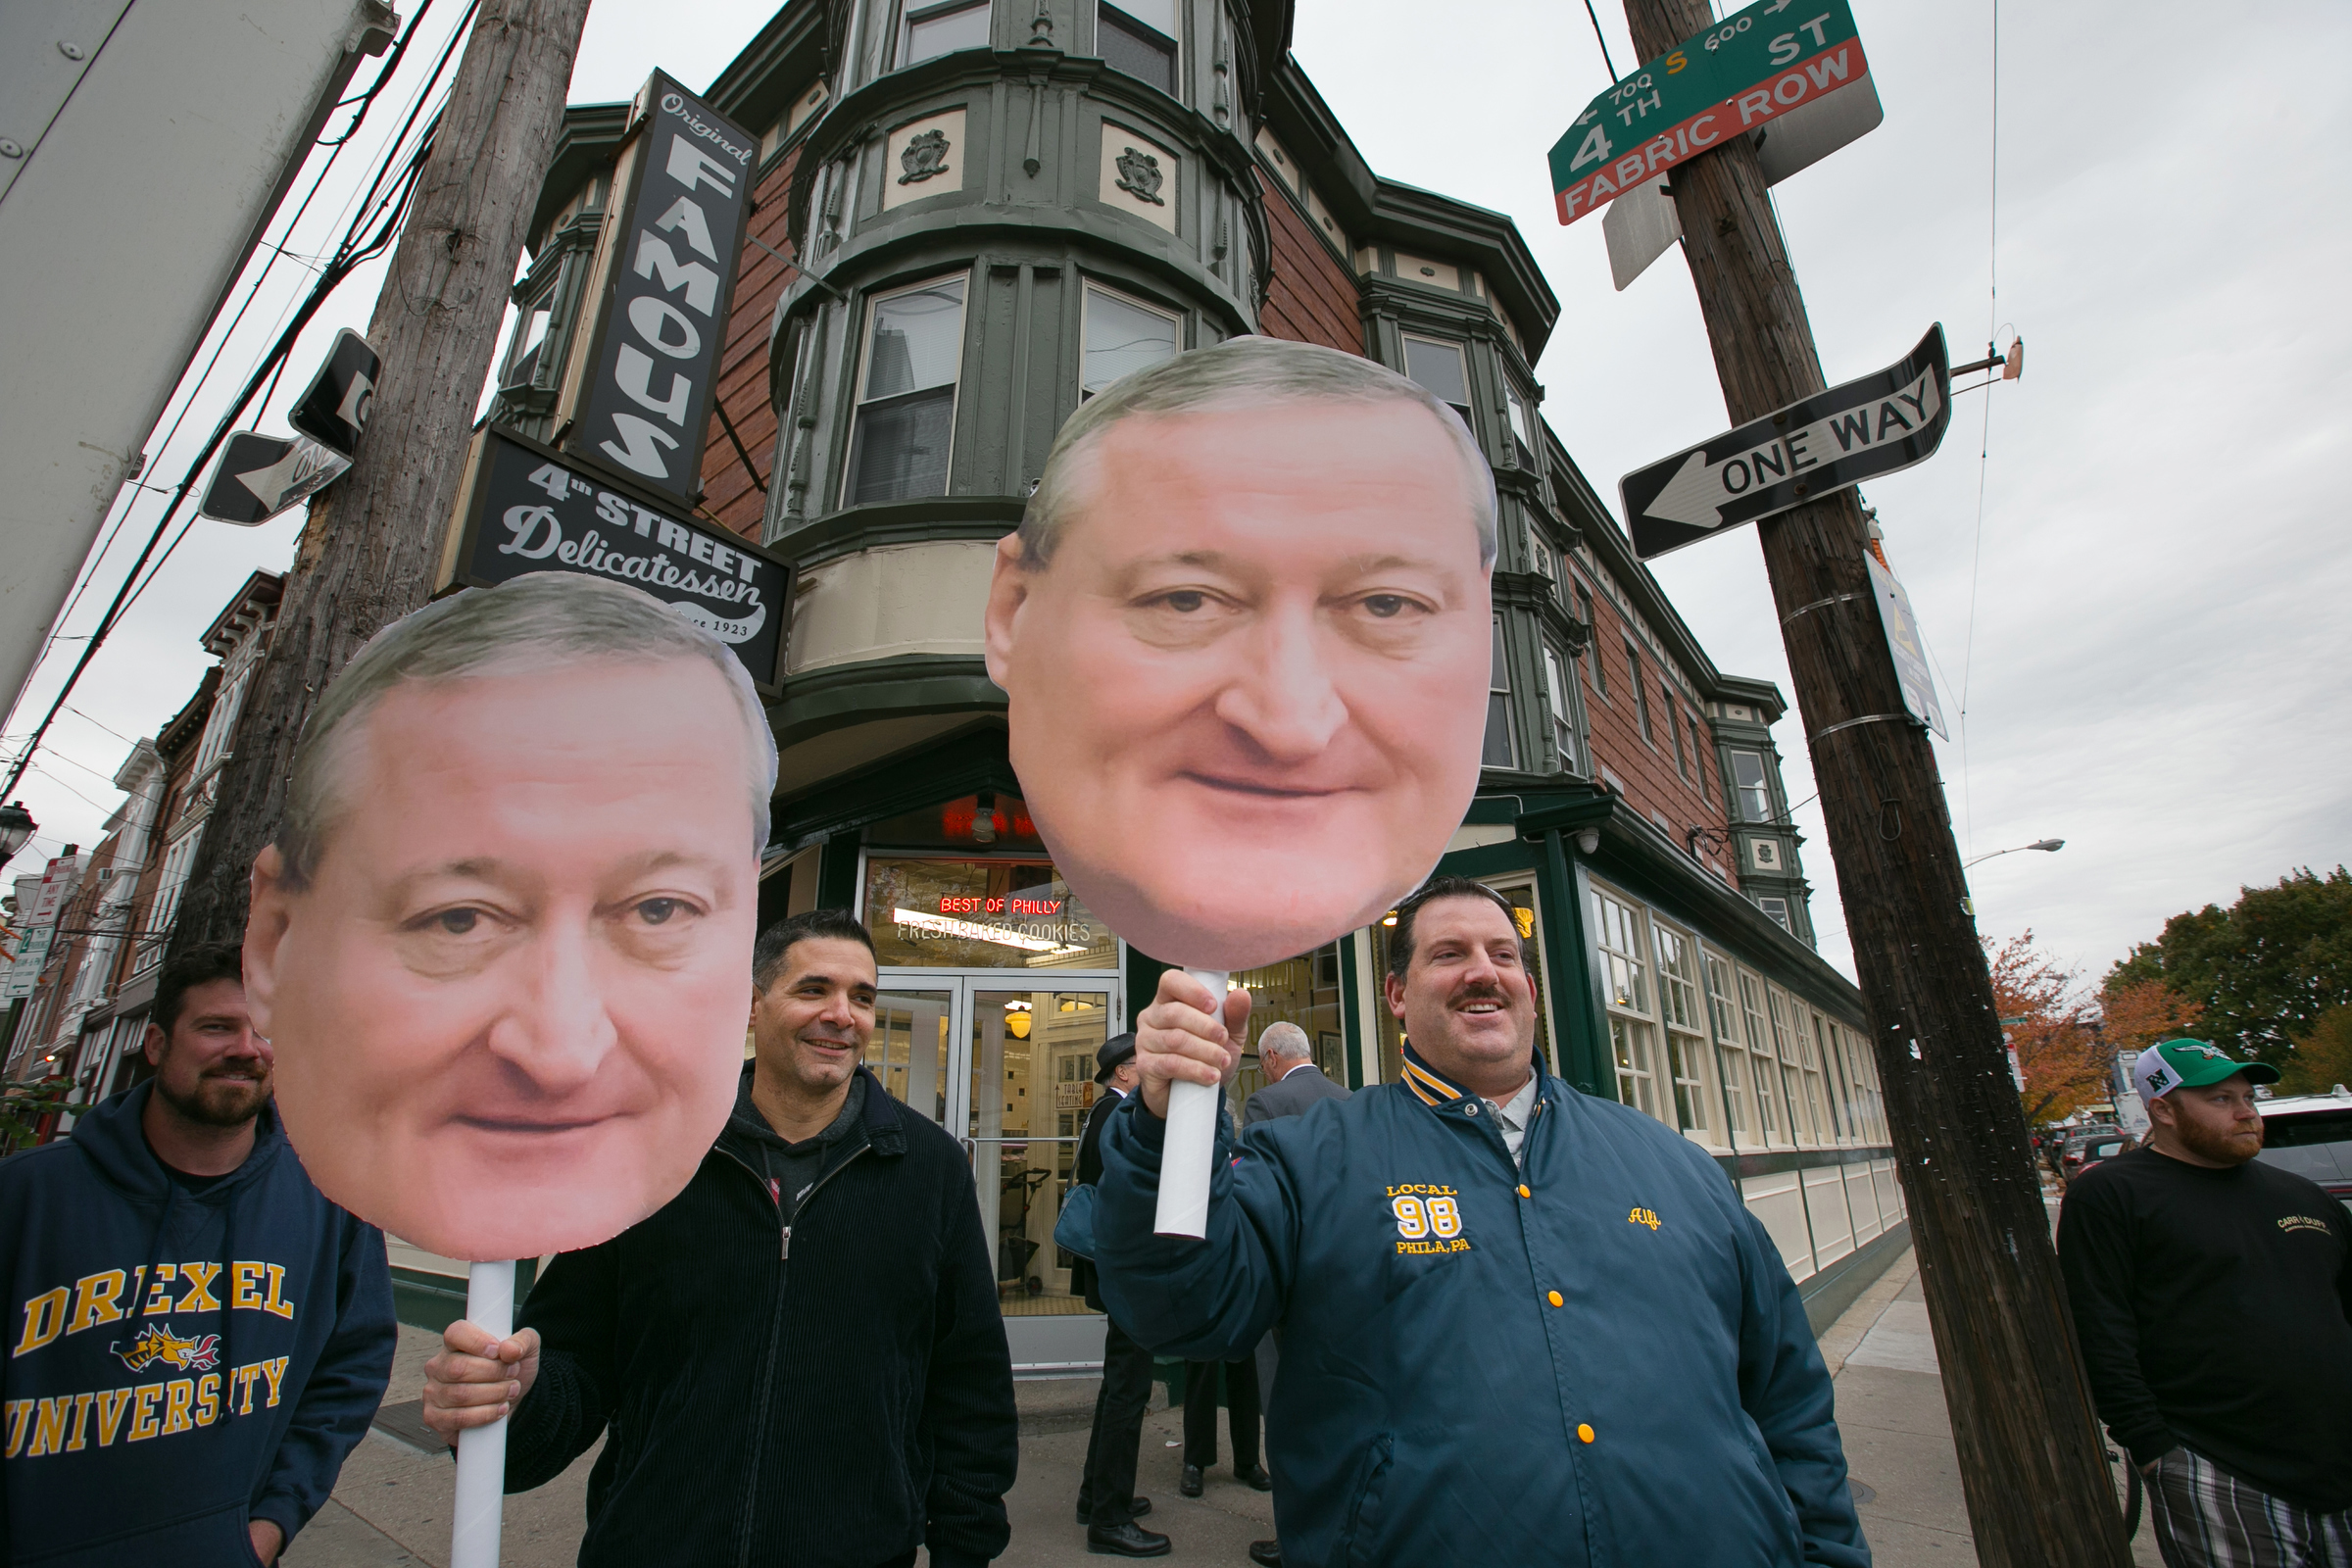 Electricians from local 98, Joseph Fareri, left, and Alfio Sorbello, right, hold up photos of Mayor James Kenney, in front of Famous 4th Street Deli, in Philadelphia, Tuesday, Nov. 7, 2017.